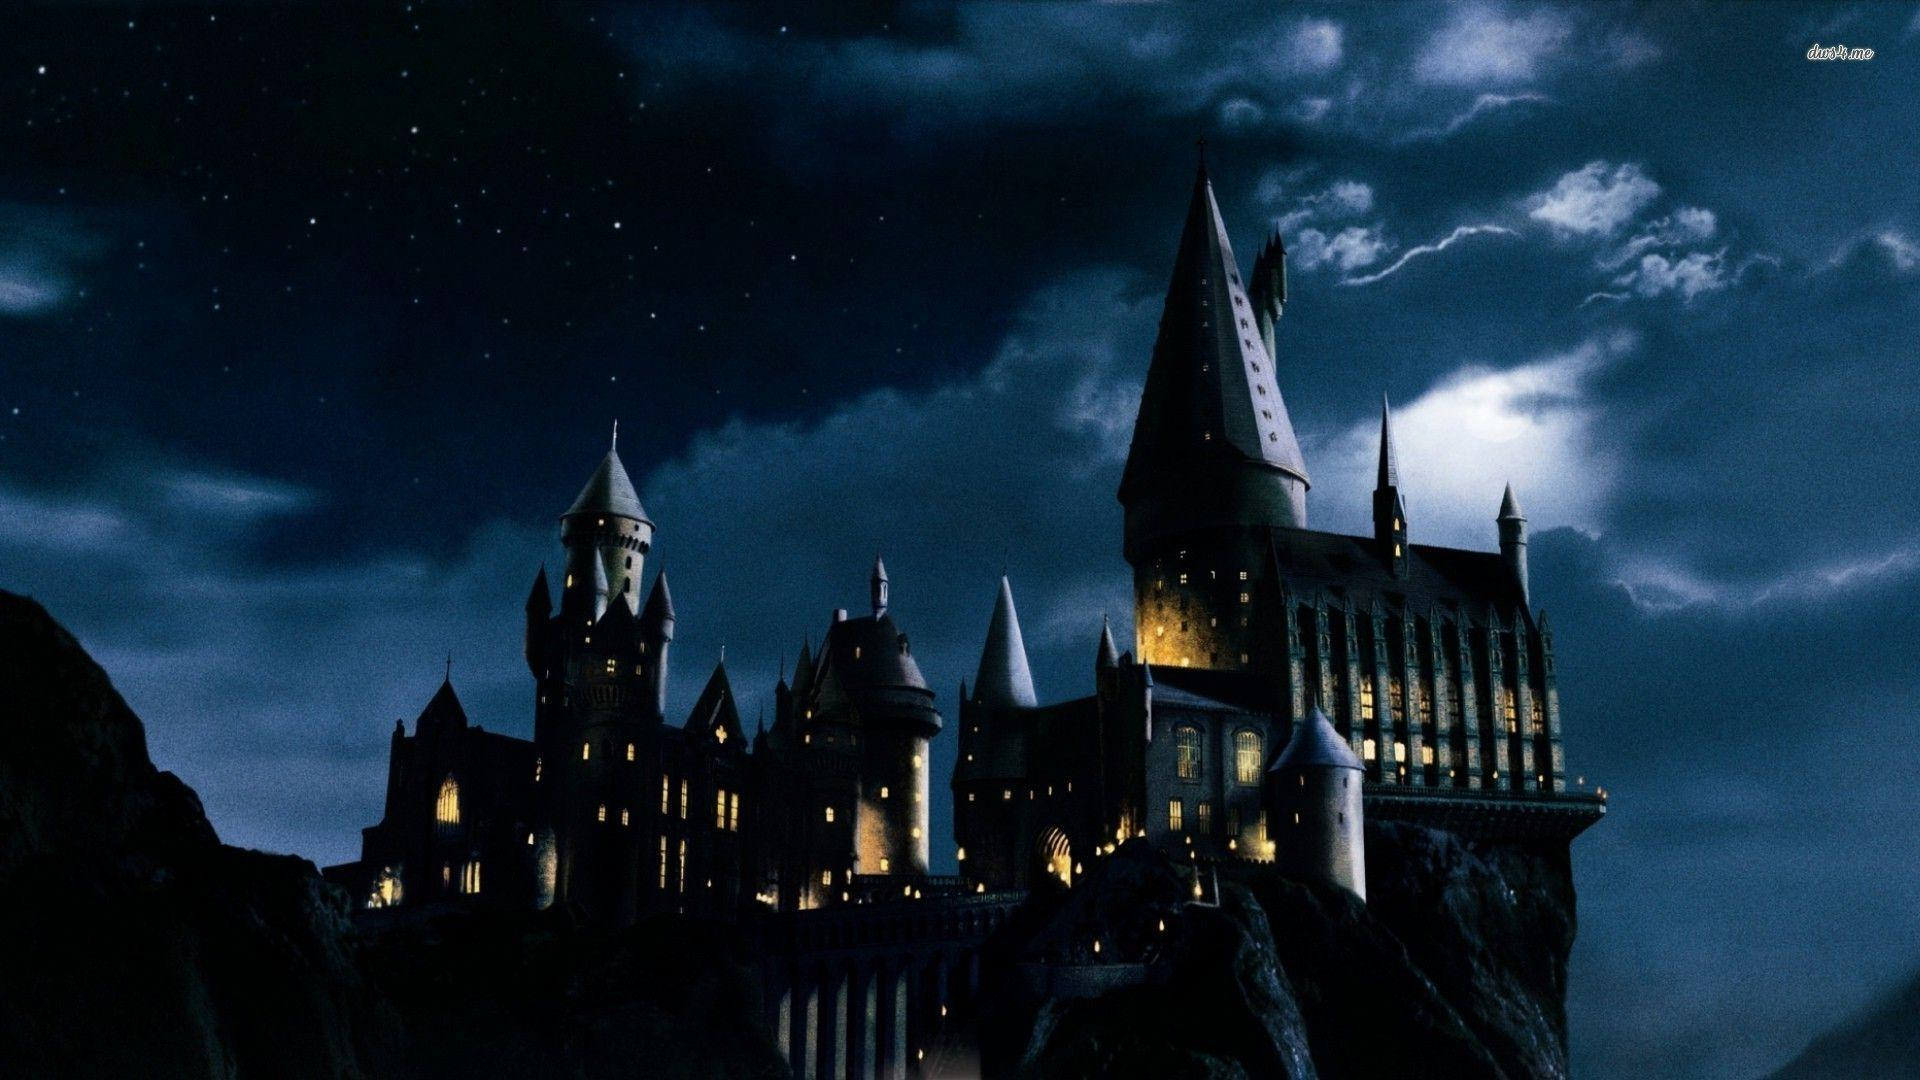 hogwarts desktop wallpaper - photo #1